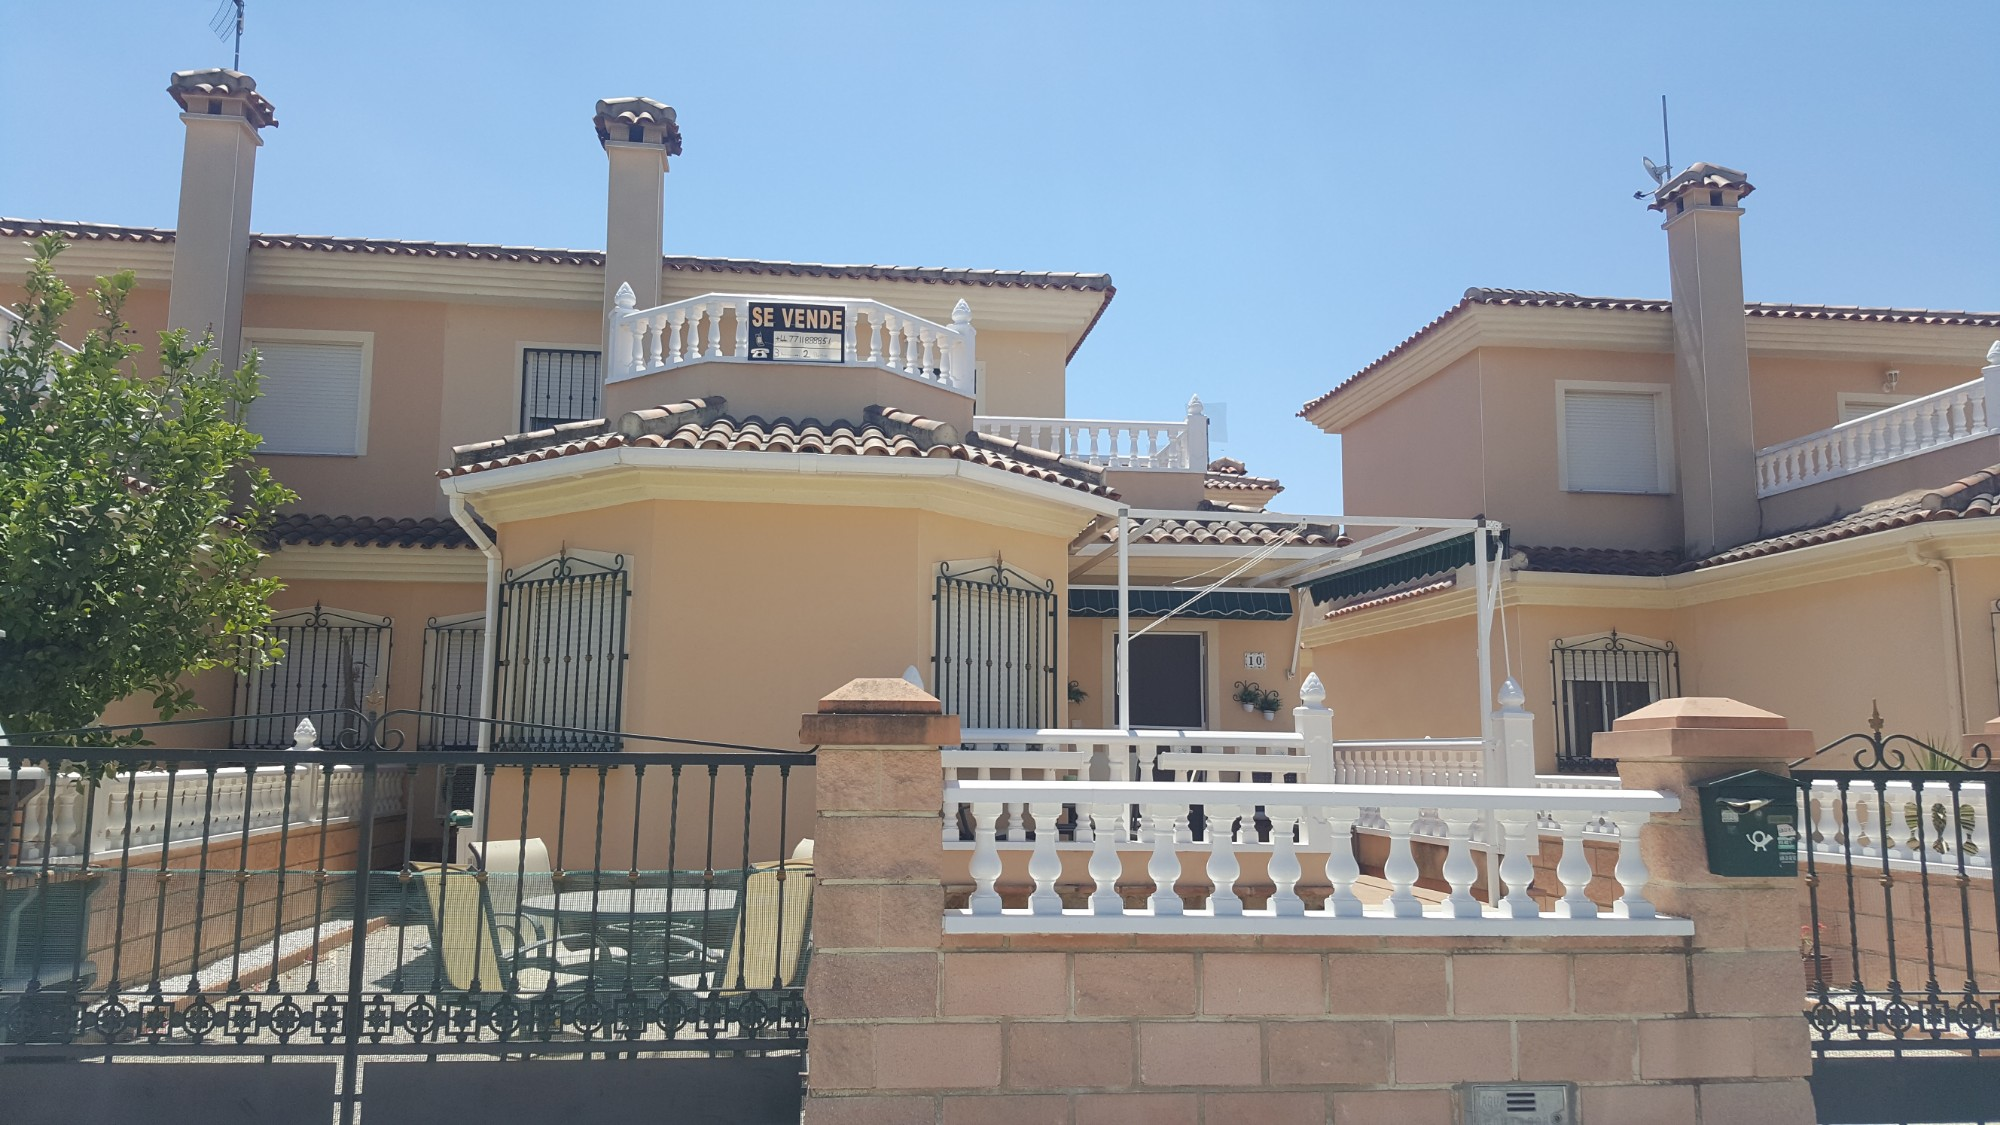 Ref:CGP JLM2595 Detached House / Villa For Sale in Almoradí